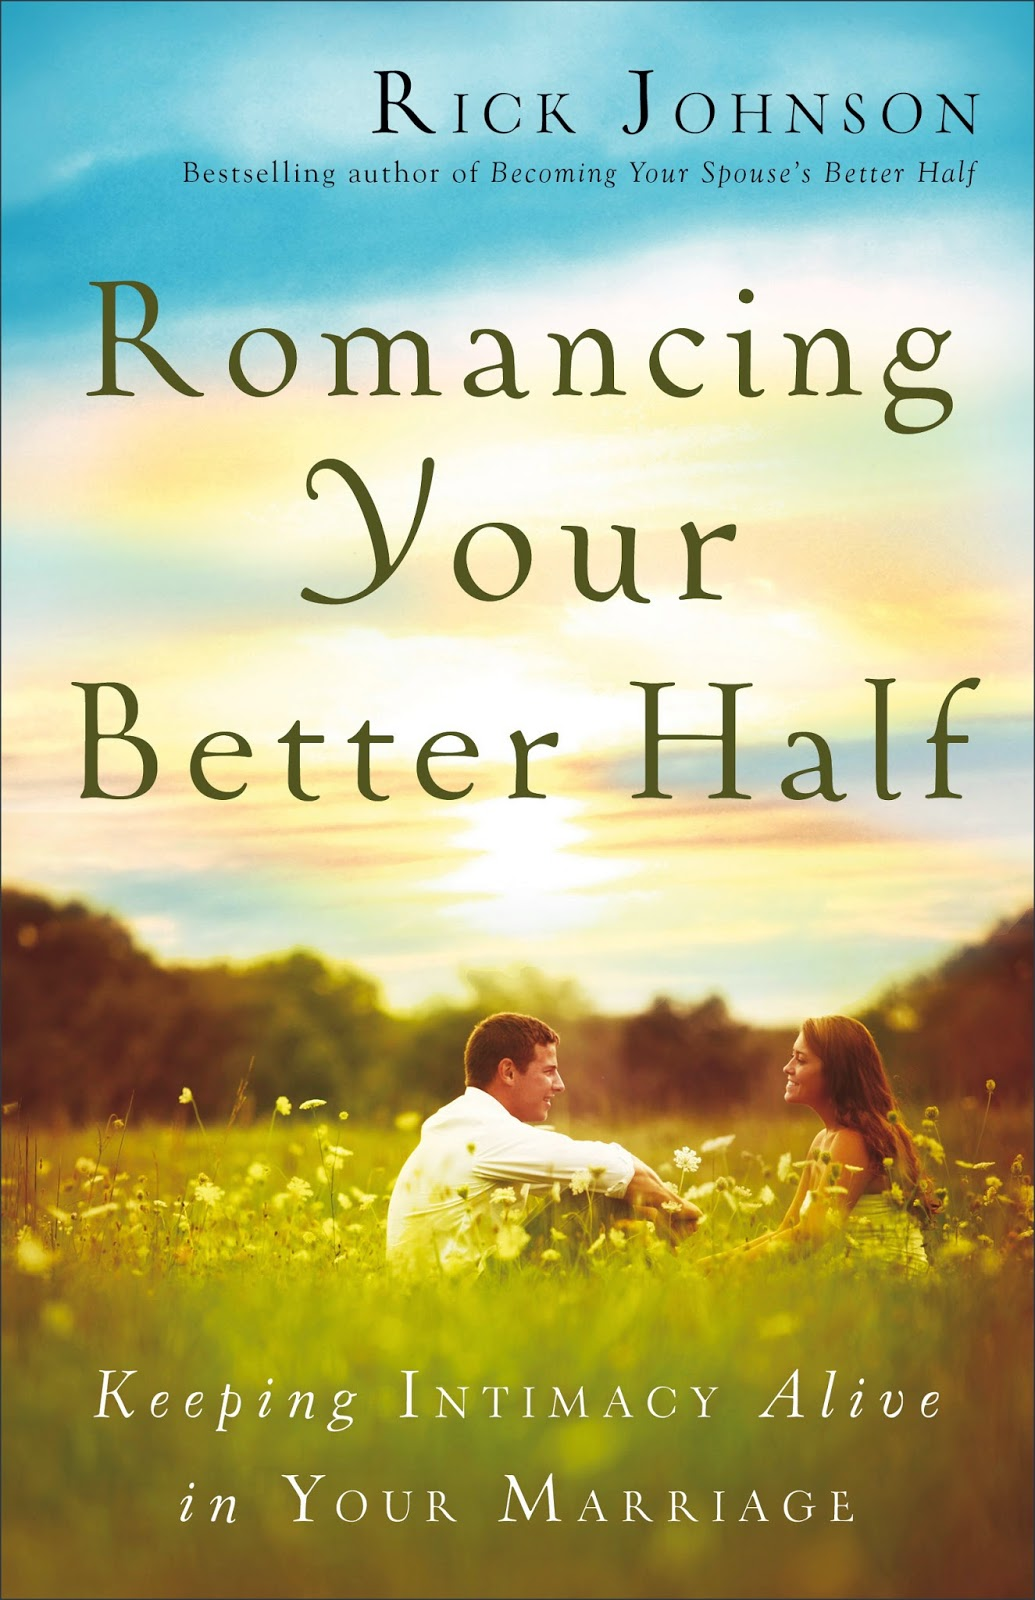 Romancing Your Better Half by Rick Johnson